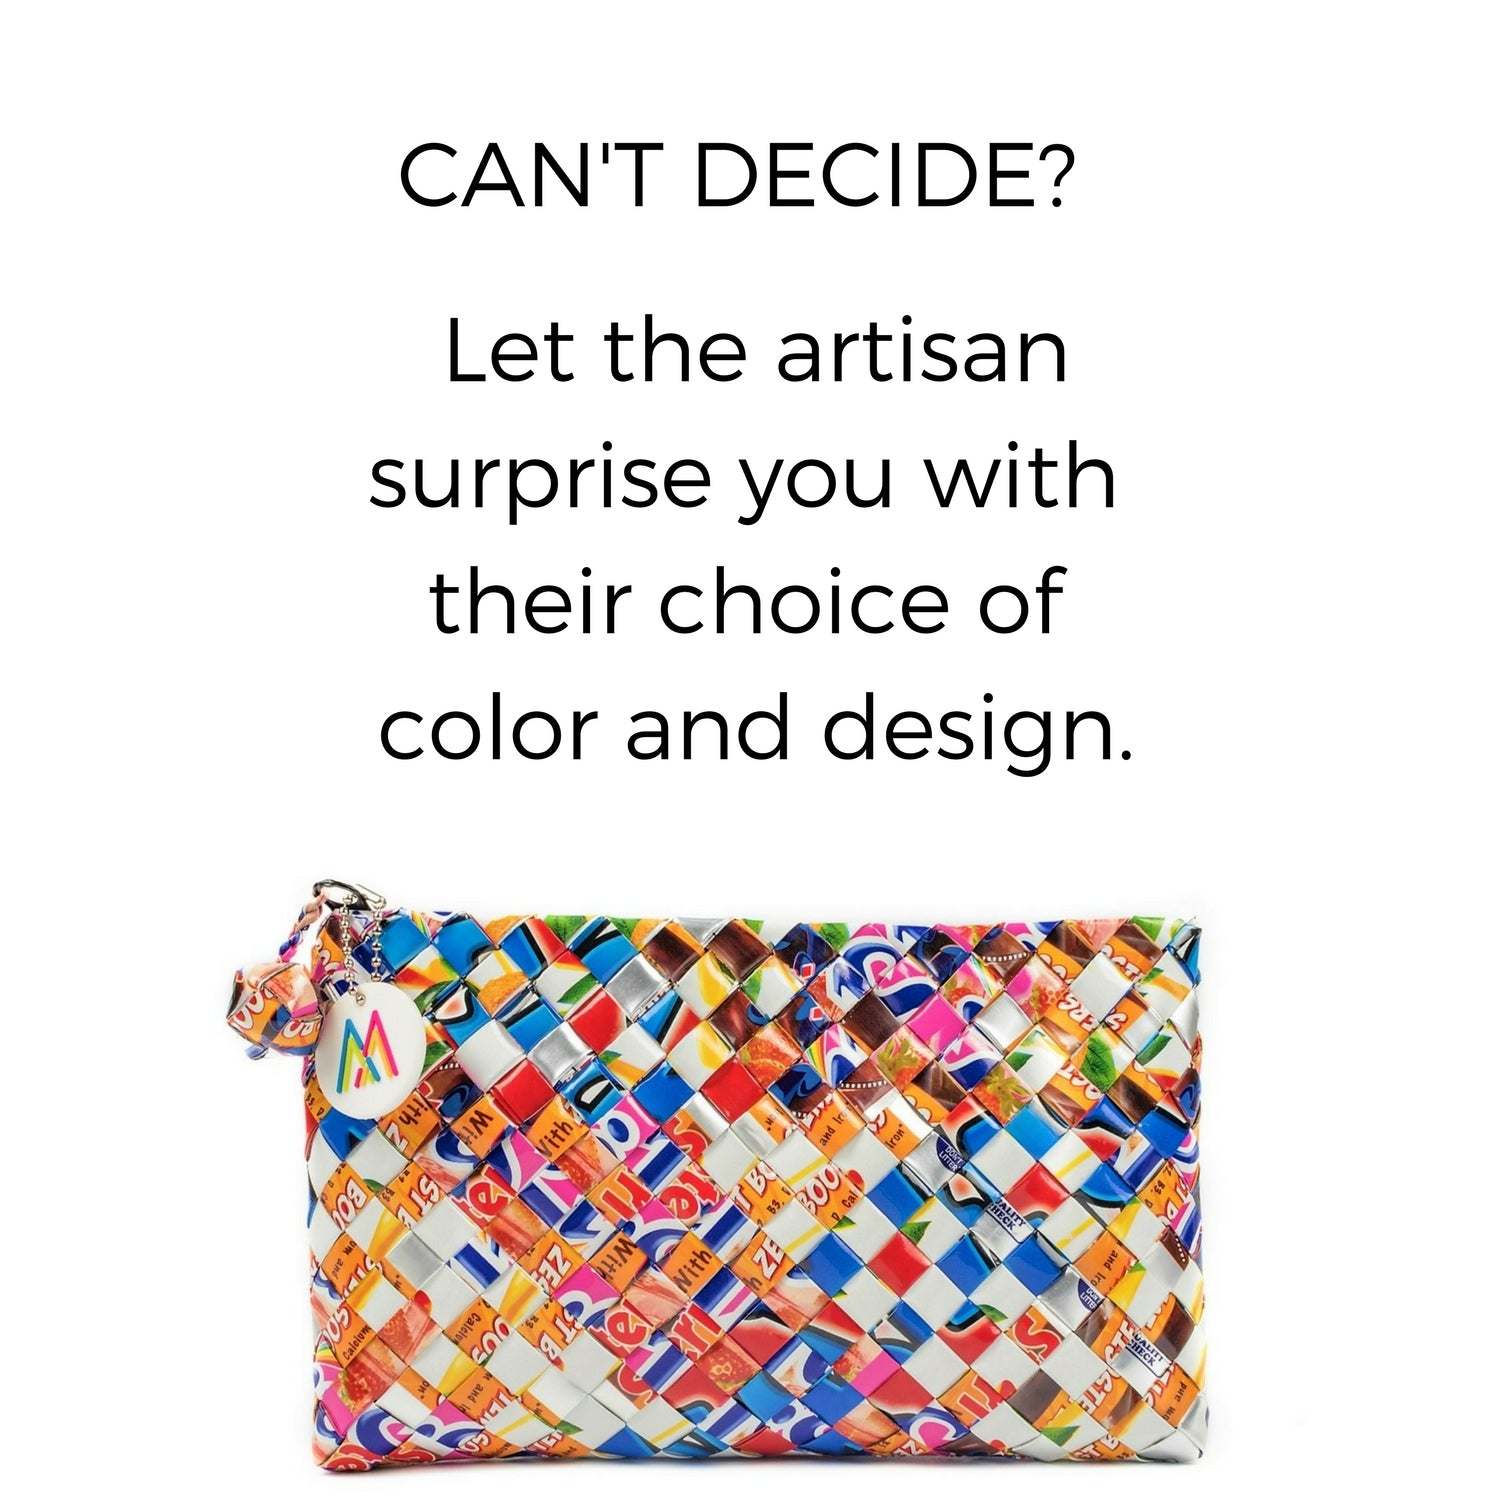 Artisan's Choice Multicolor Clutch